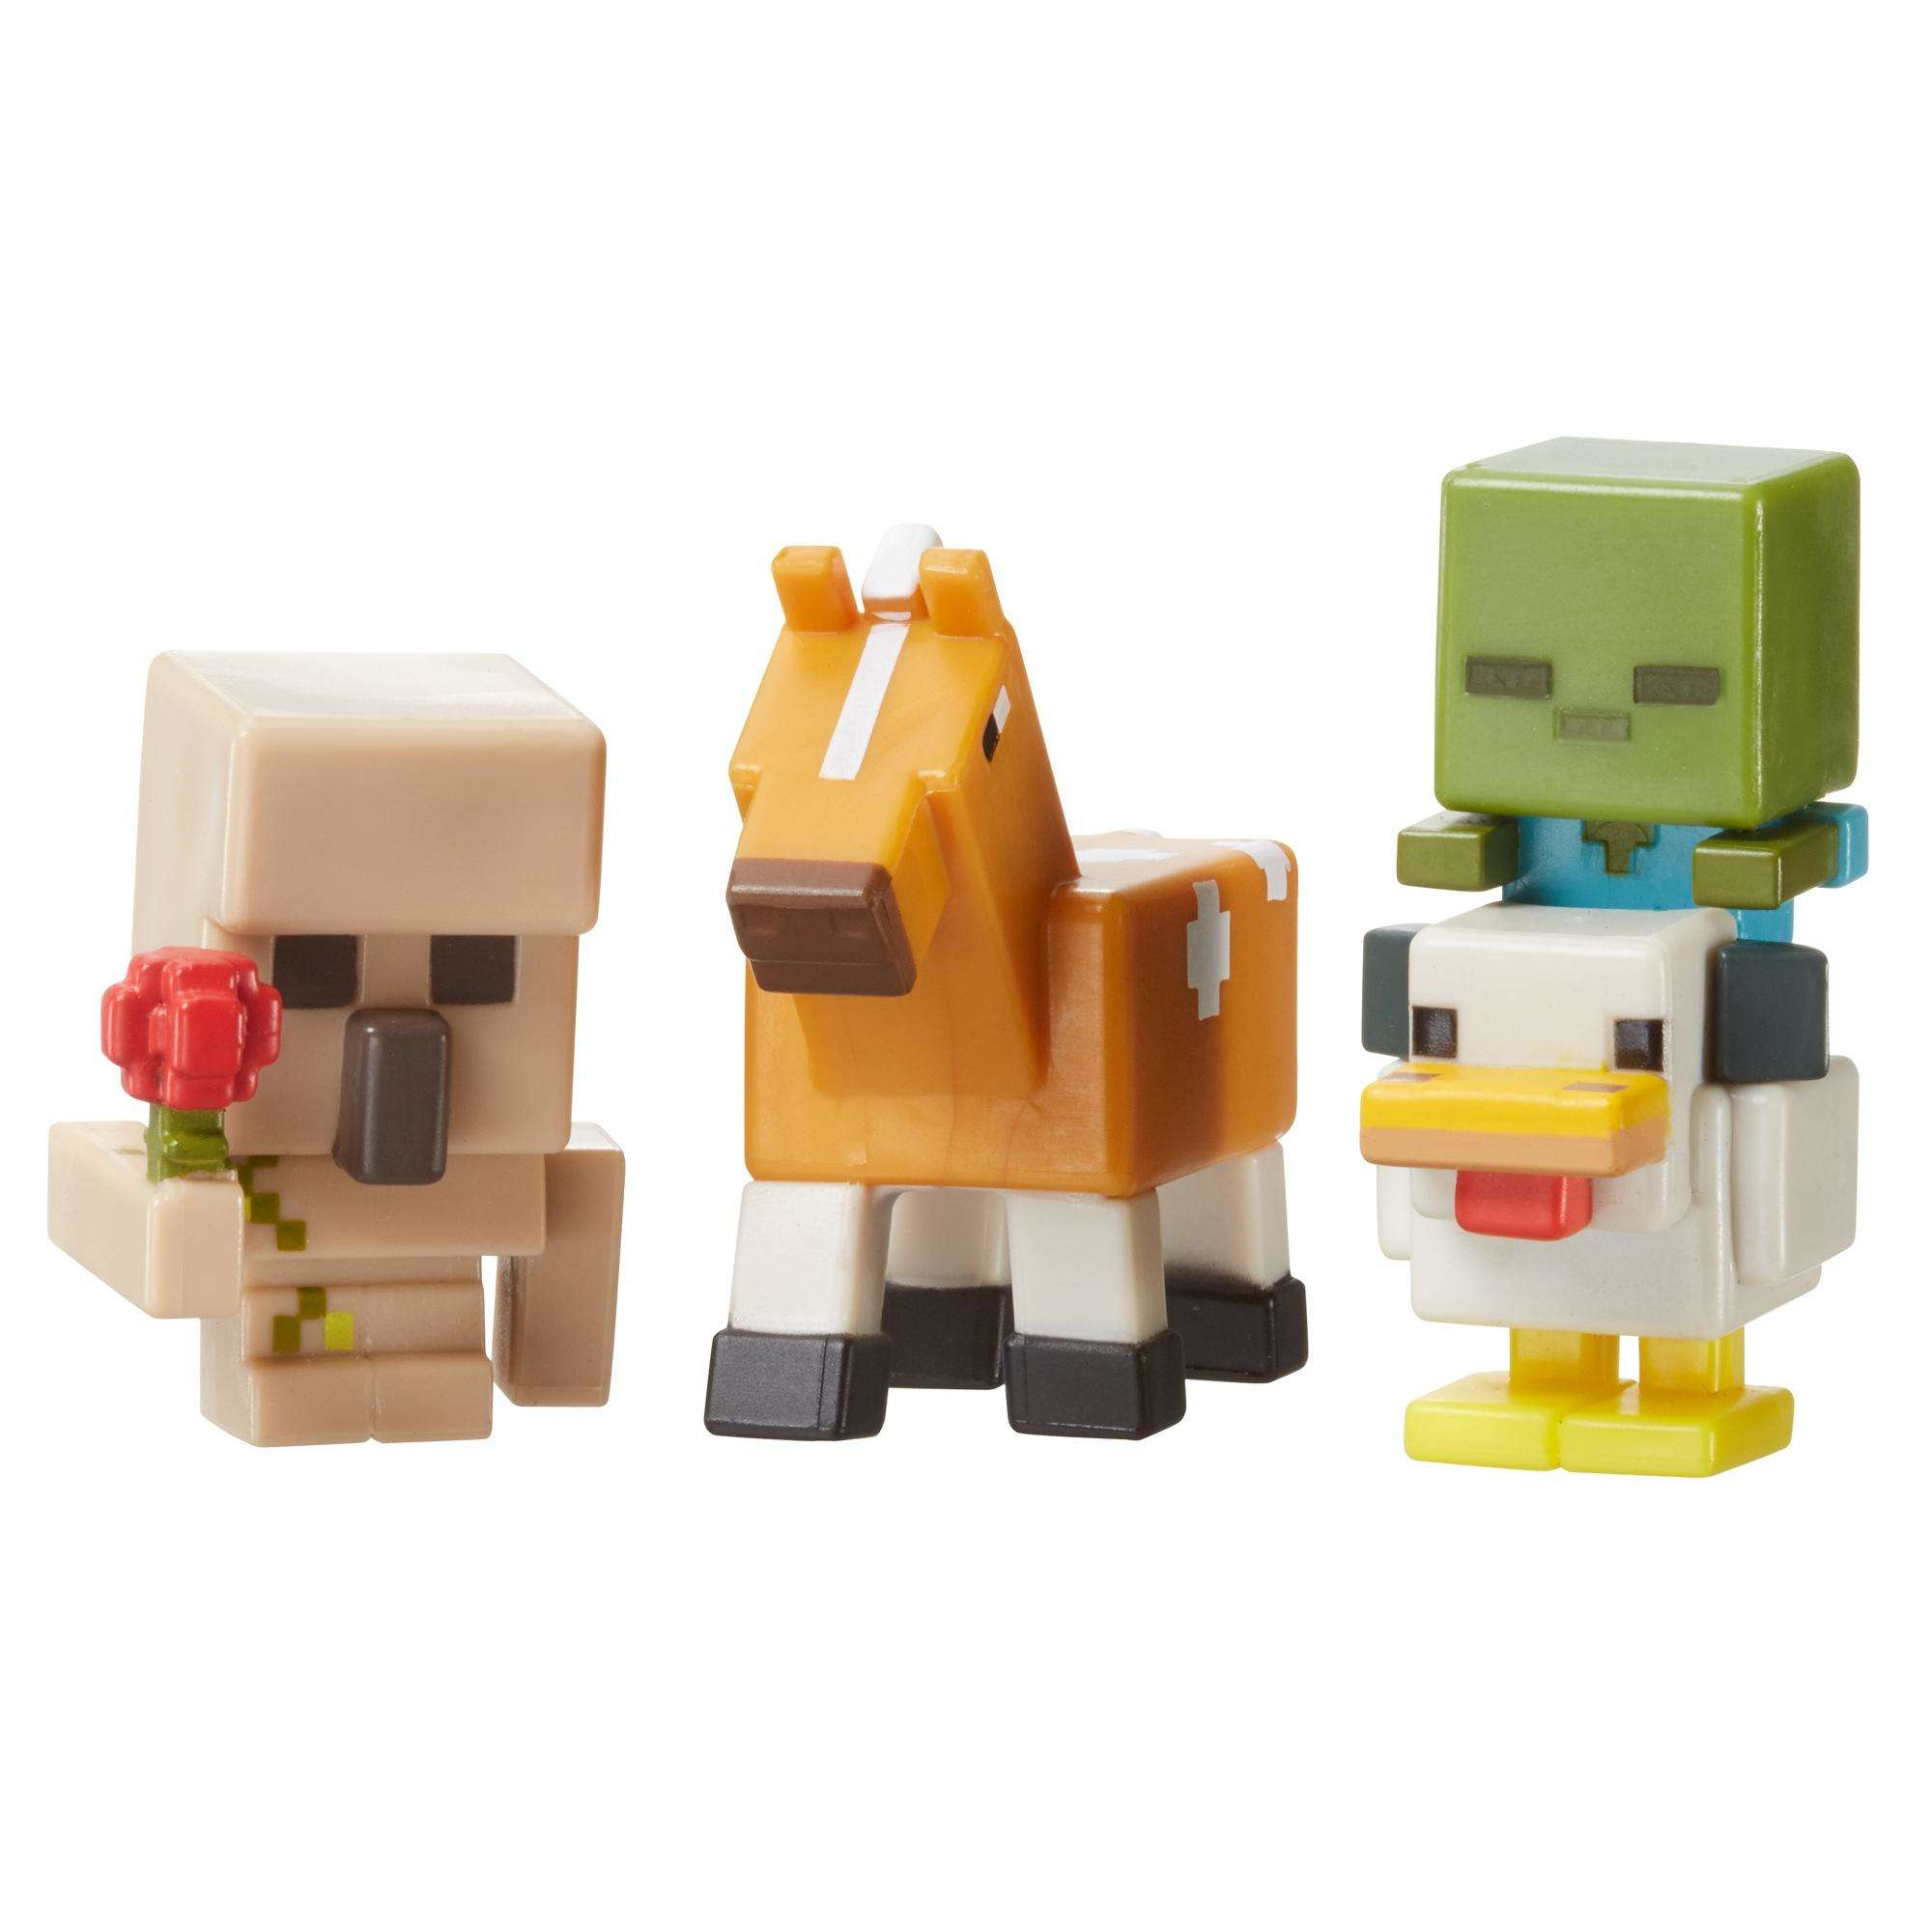 Minecraft 3-Pack Iron Golem with Flower, Chicken Zombie and Palomino Horse Figures by Mattel